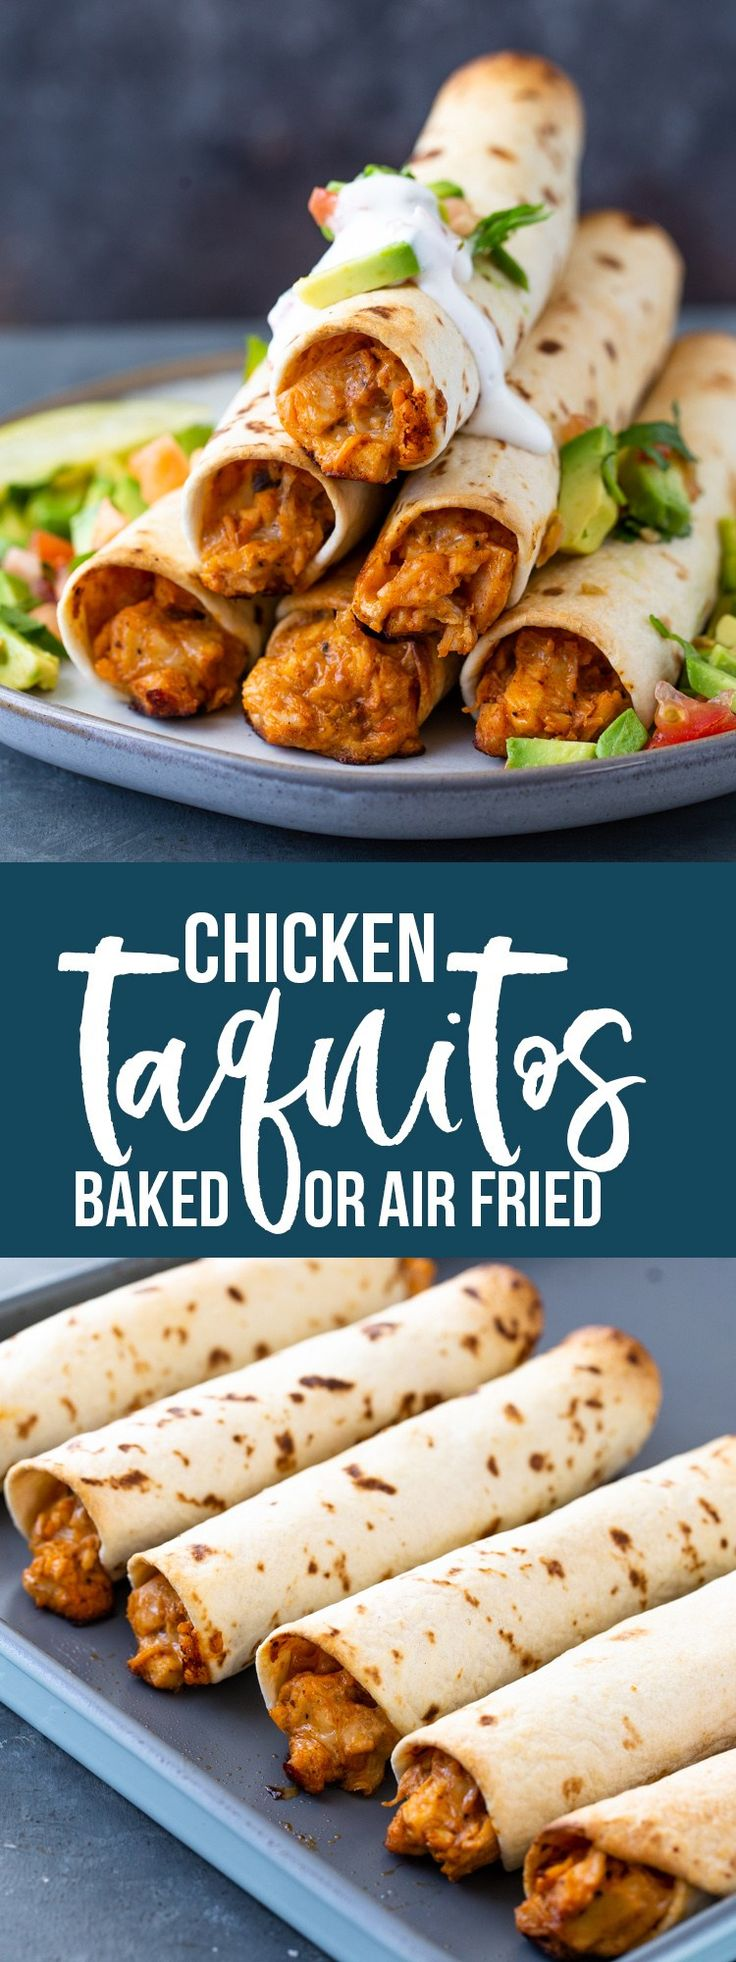 Chicken Taquitos (Baked or AirFryer) Gimme Delicious in